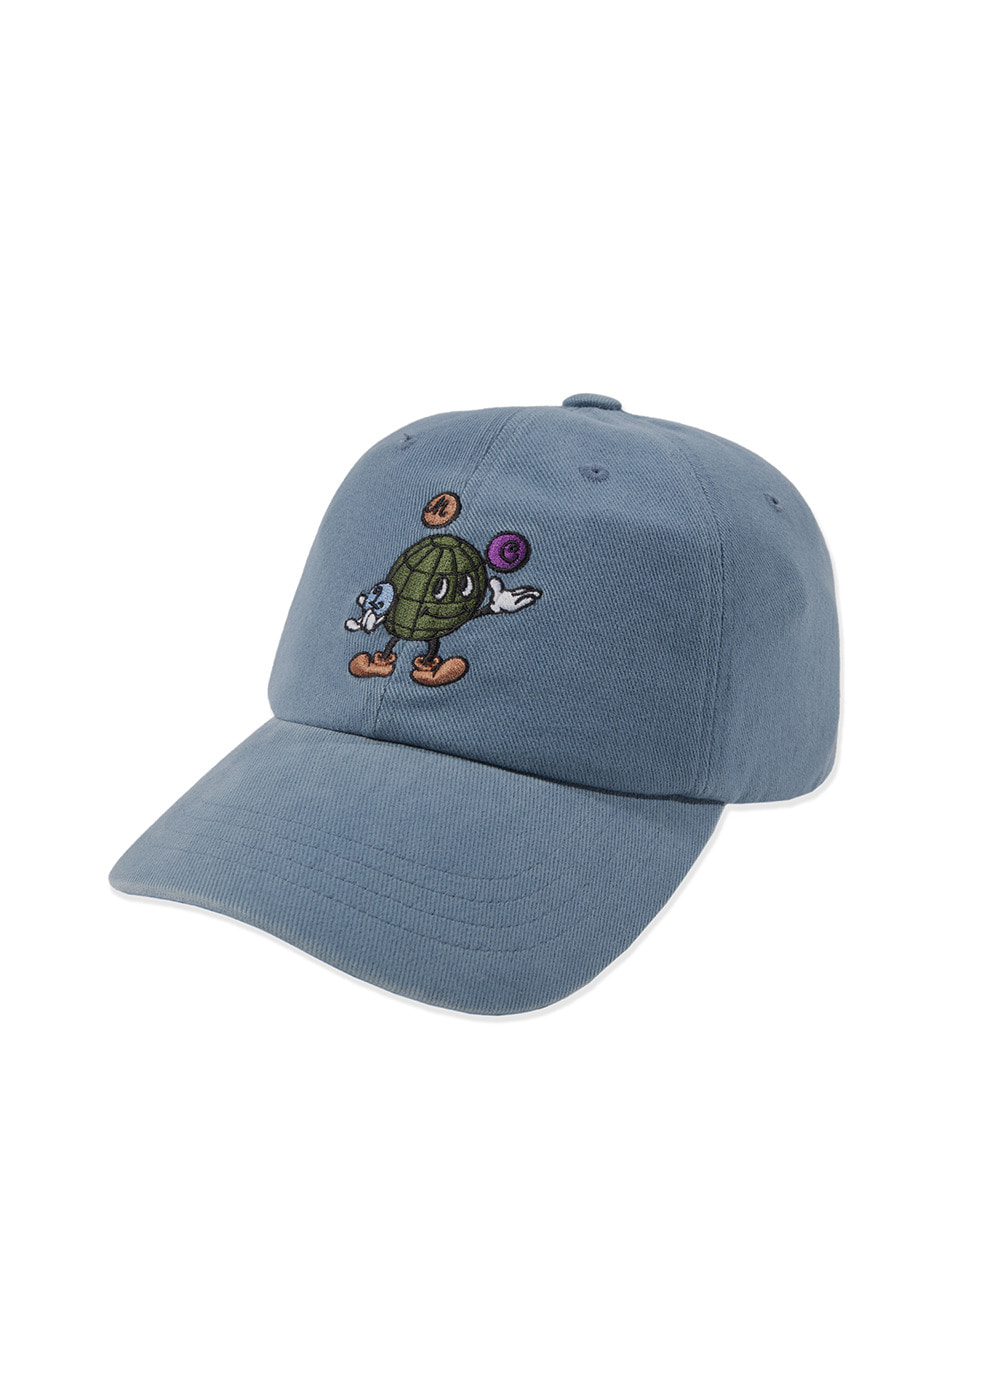 LMC EARTH MAN 6 PANEL CAP vtg blue